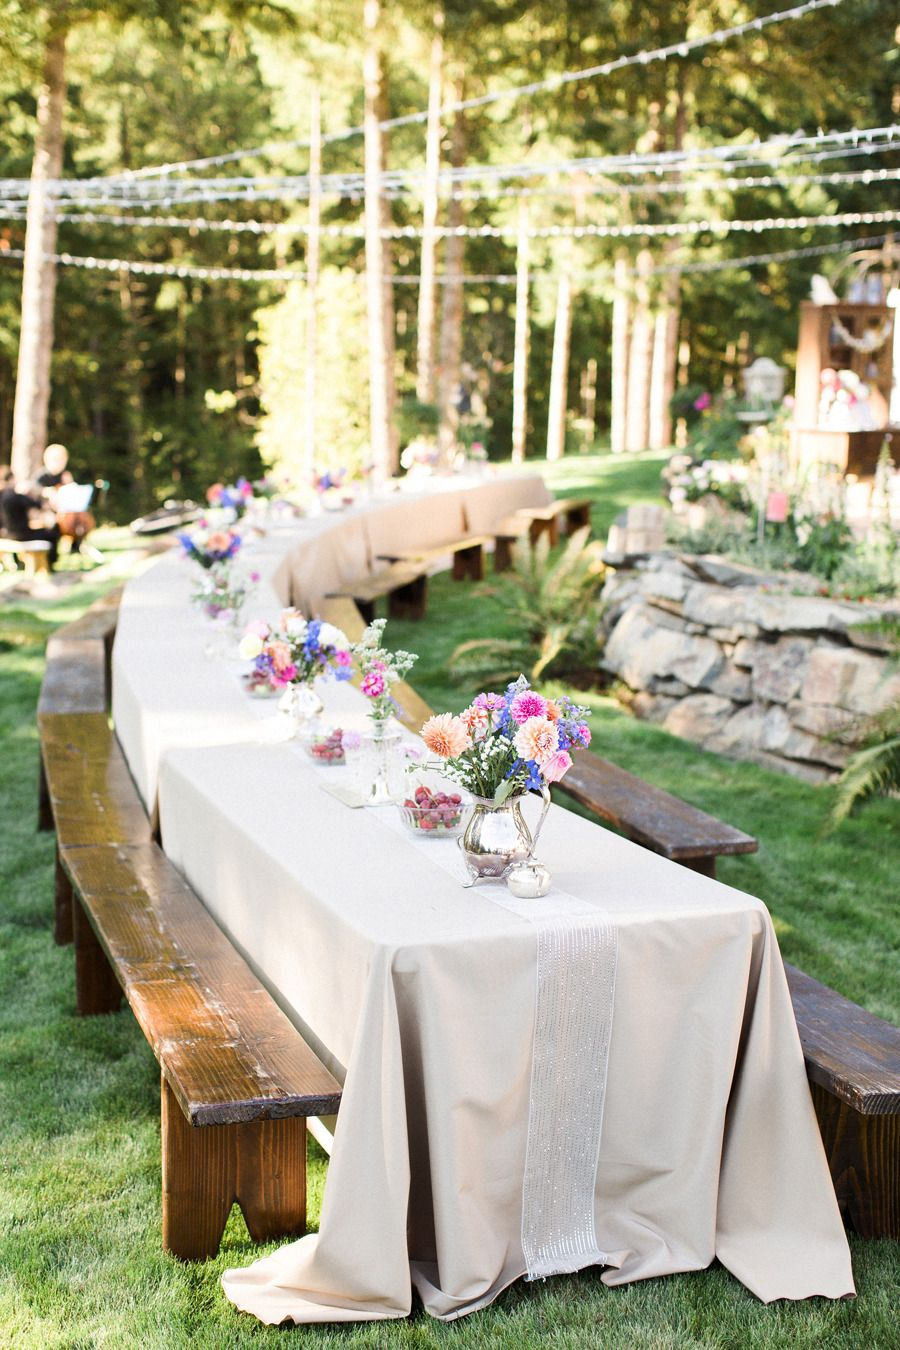 Diy Backyard Oregon Wedding Boho Wedding Backyard Wedding intended for 15 Awesome Tricks of How to Build Cheap Backyard Wedding Reception Ideas